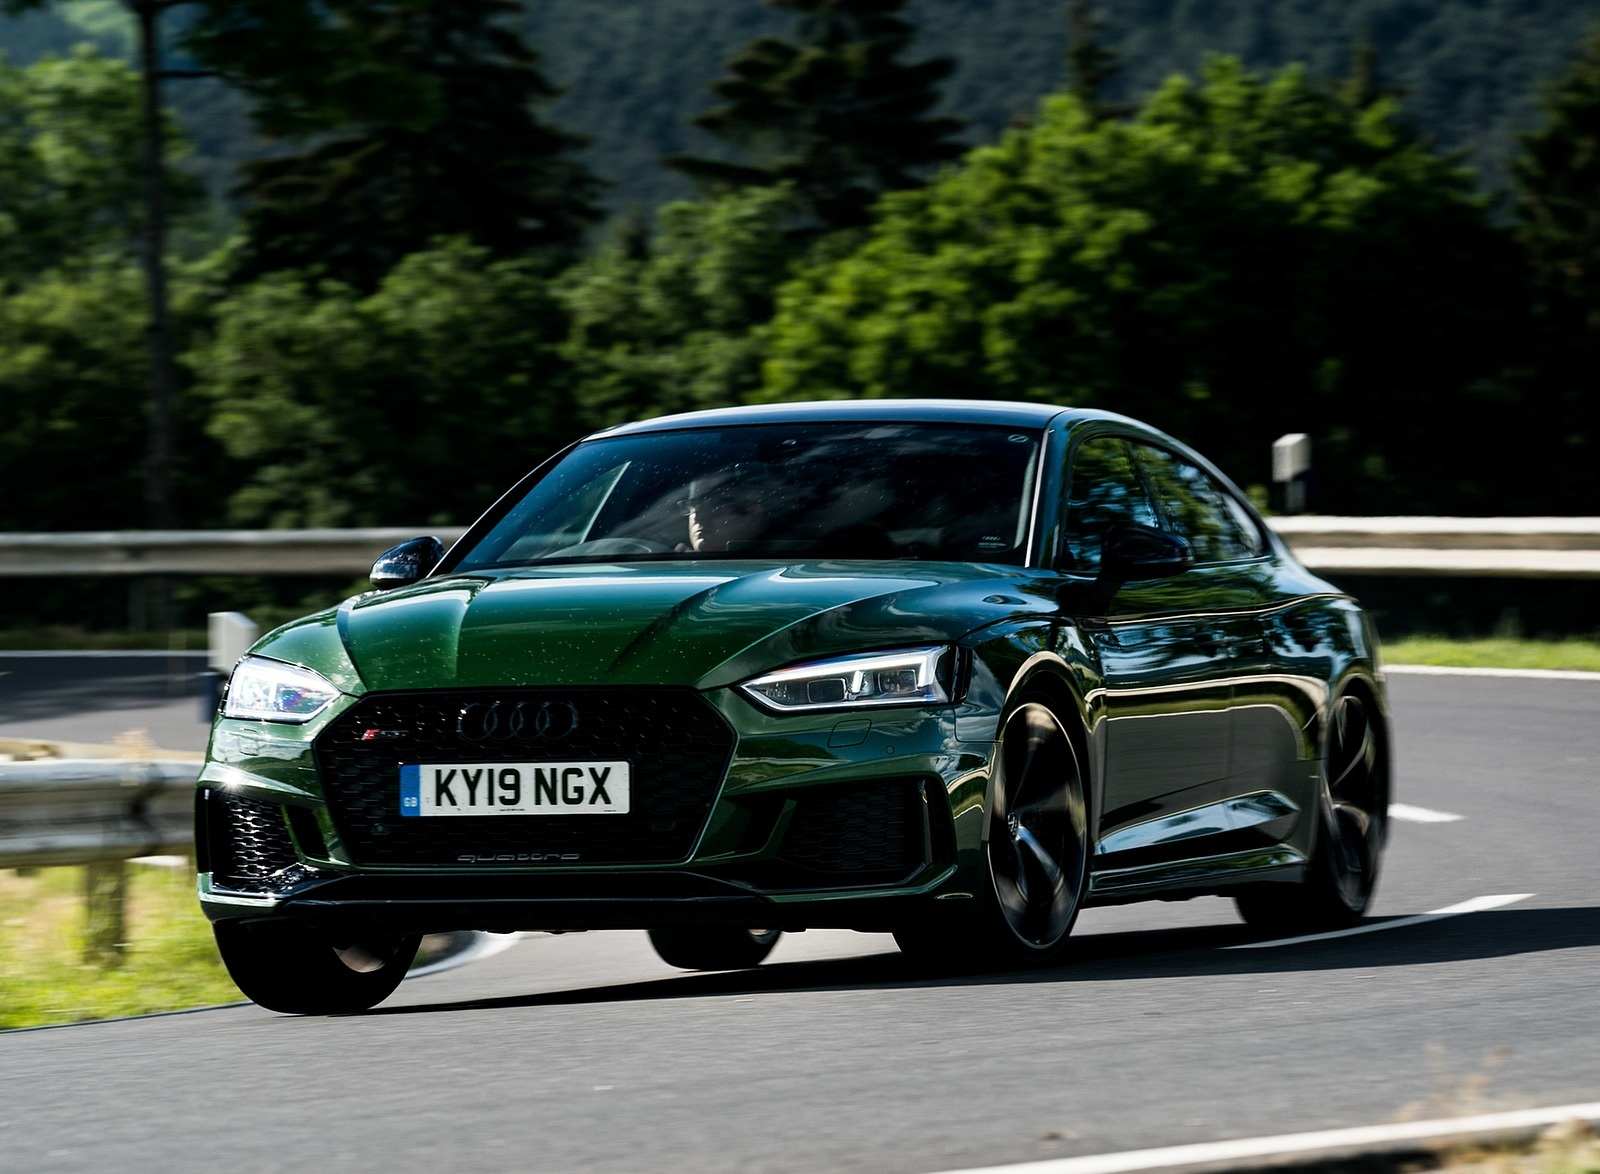 2019 Audi RS 5 Sportback (UK-Spec) Front Three-Quarter Wallpapers (2)